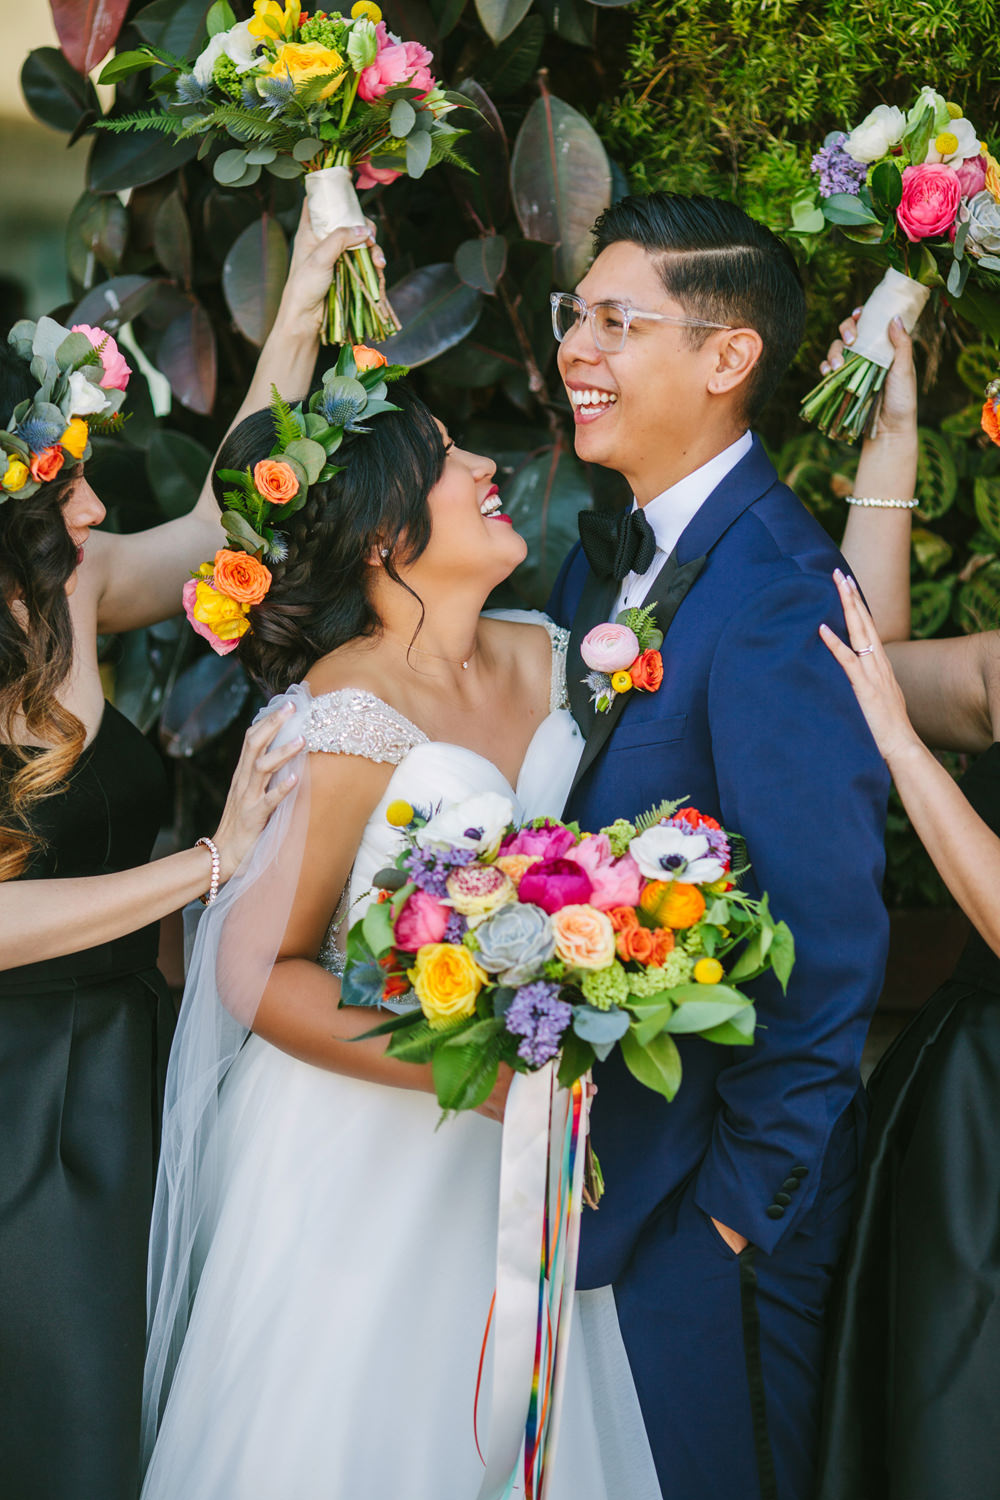 wedding photography - photo by Priscila Valentina http://ruffledblog.com/whimsical-vibrant-laguna-beach-wedding